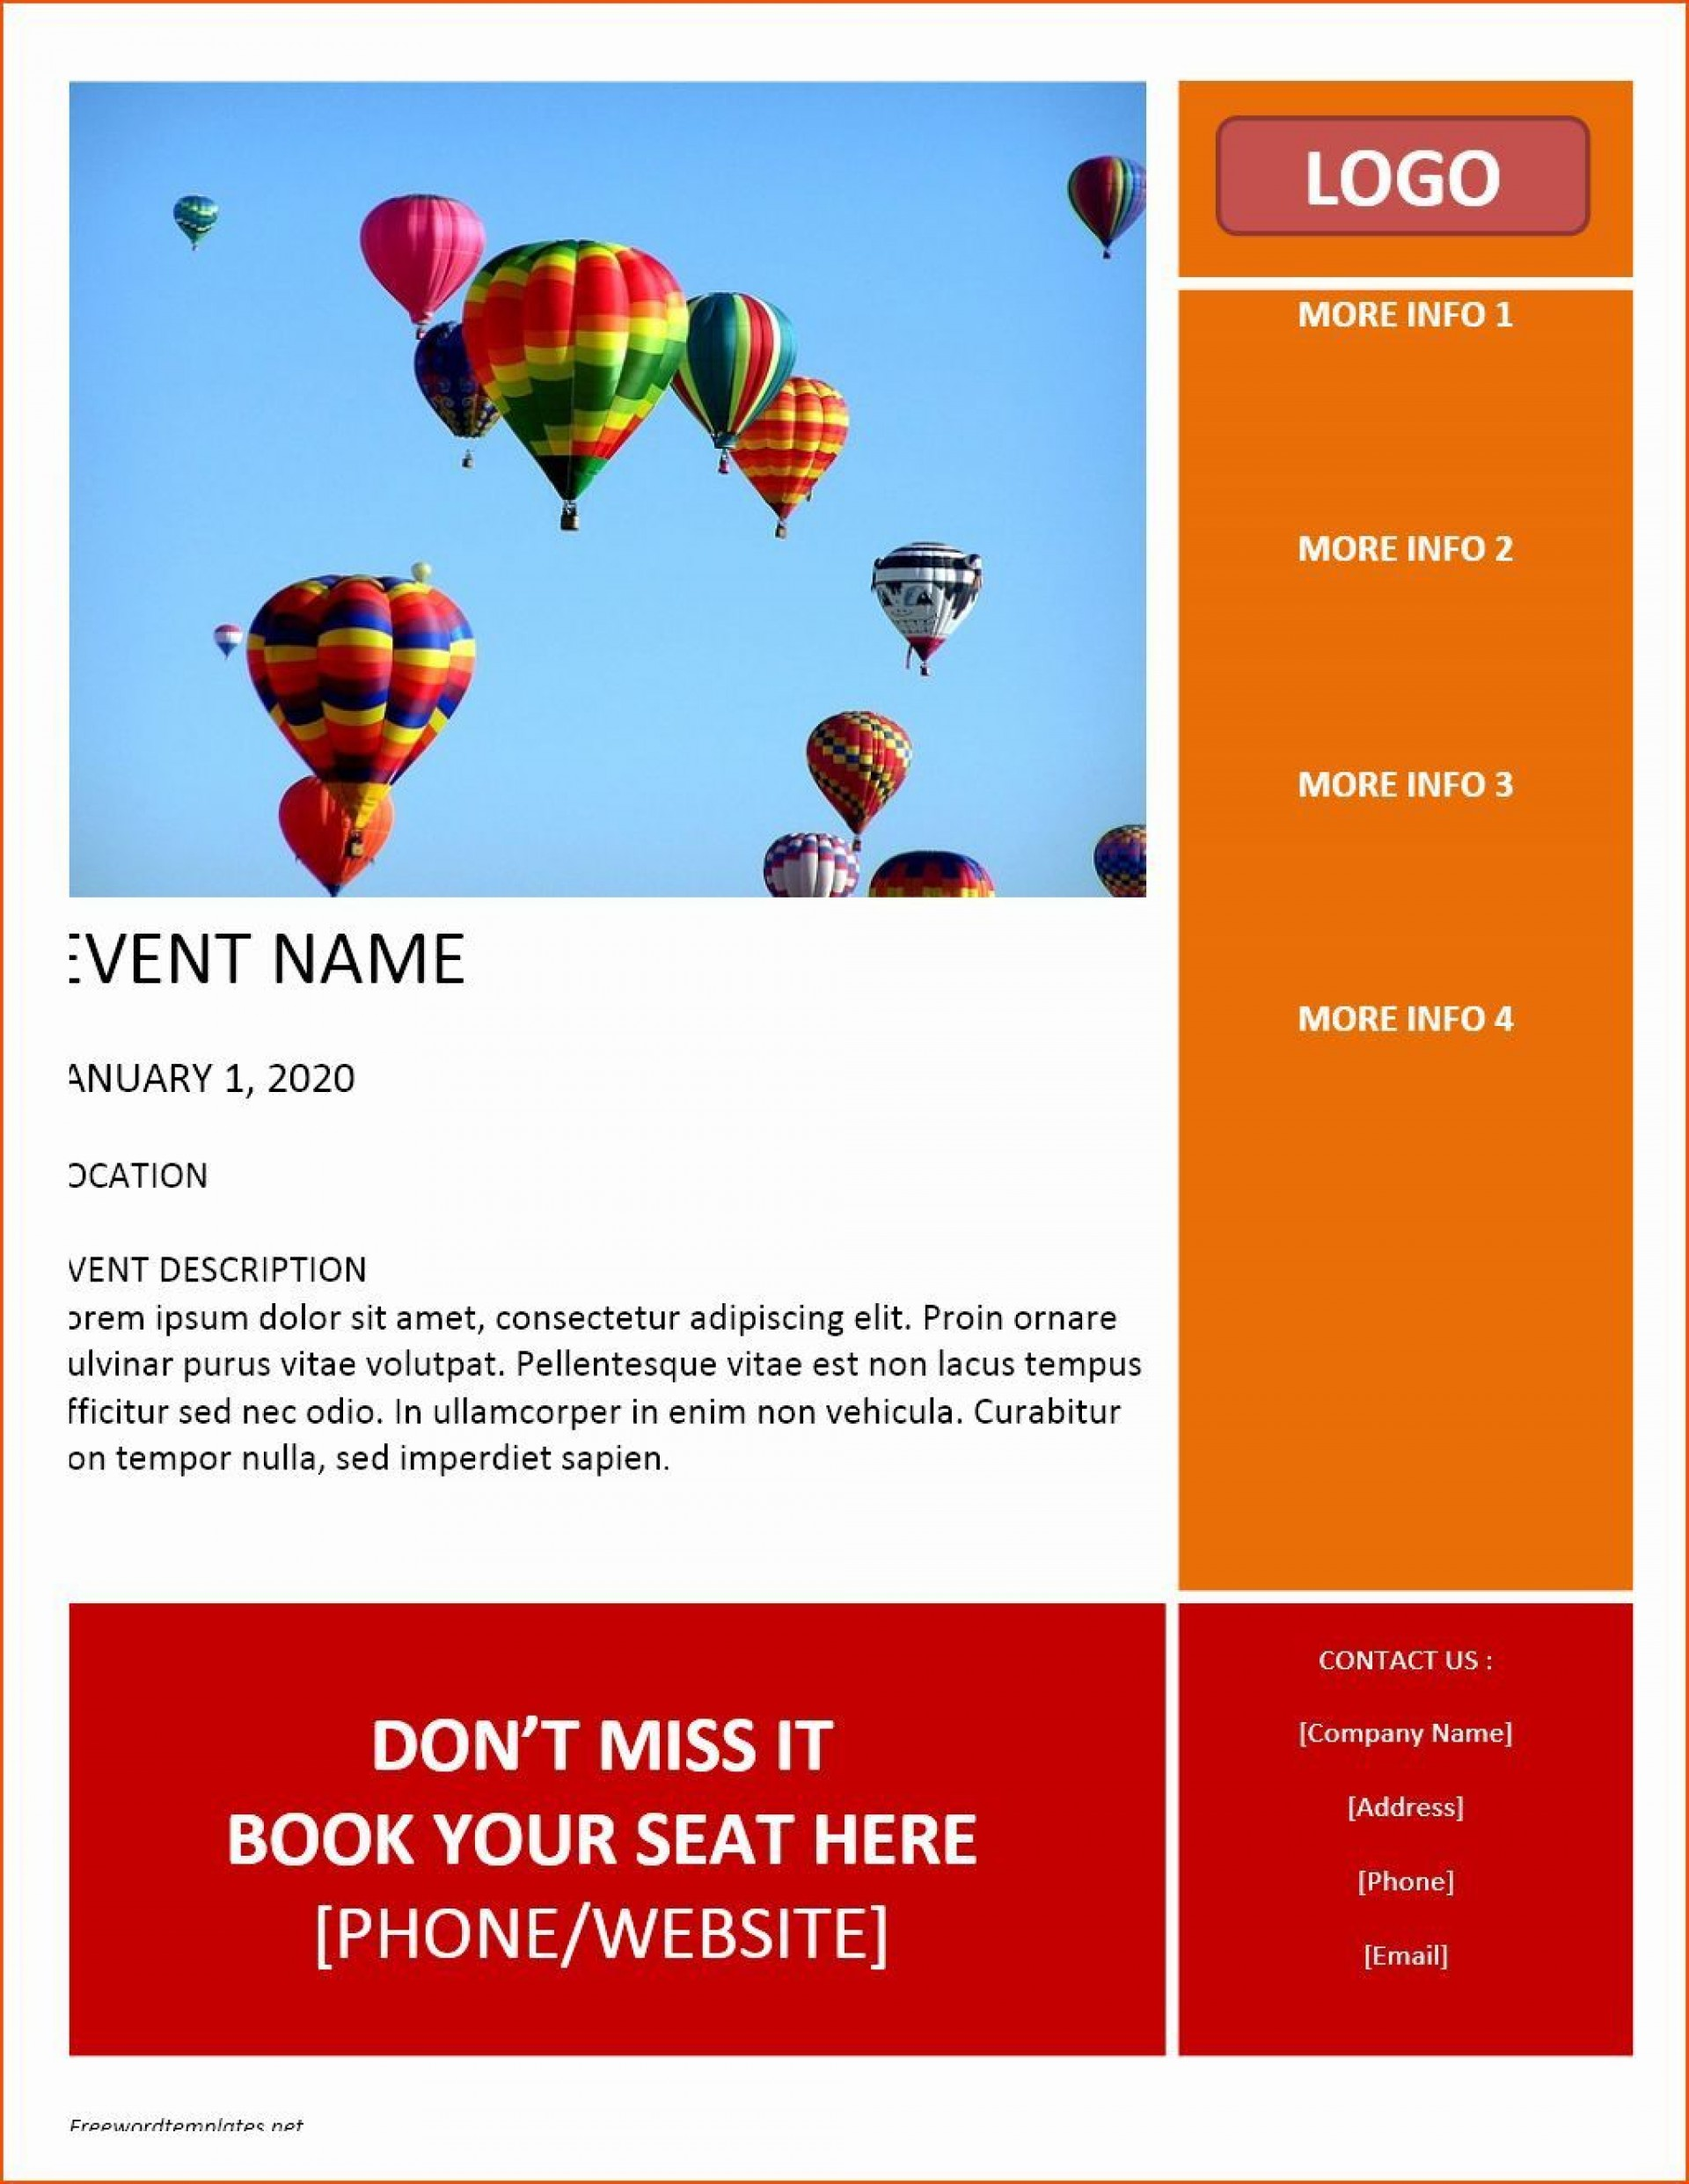 004 Impressive Free Flyer Template Word Image  Document Blank Download1920